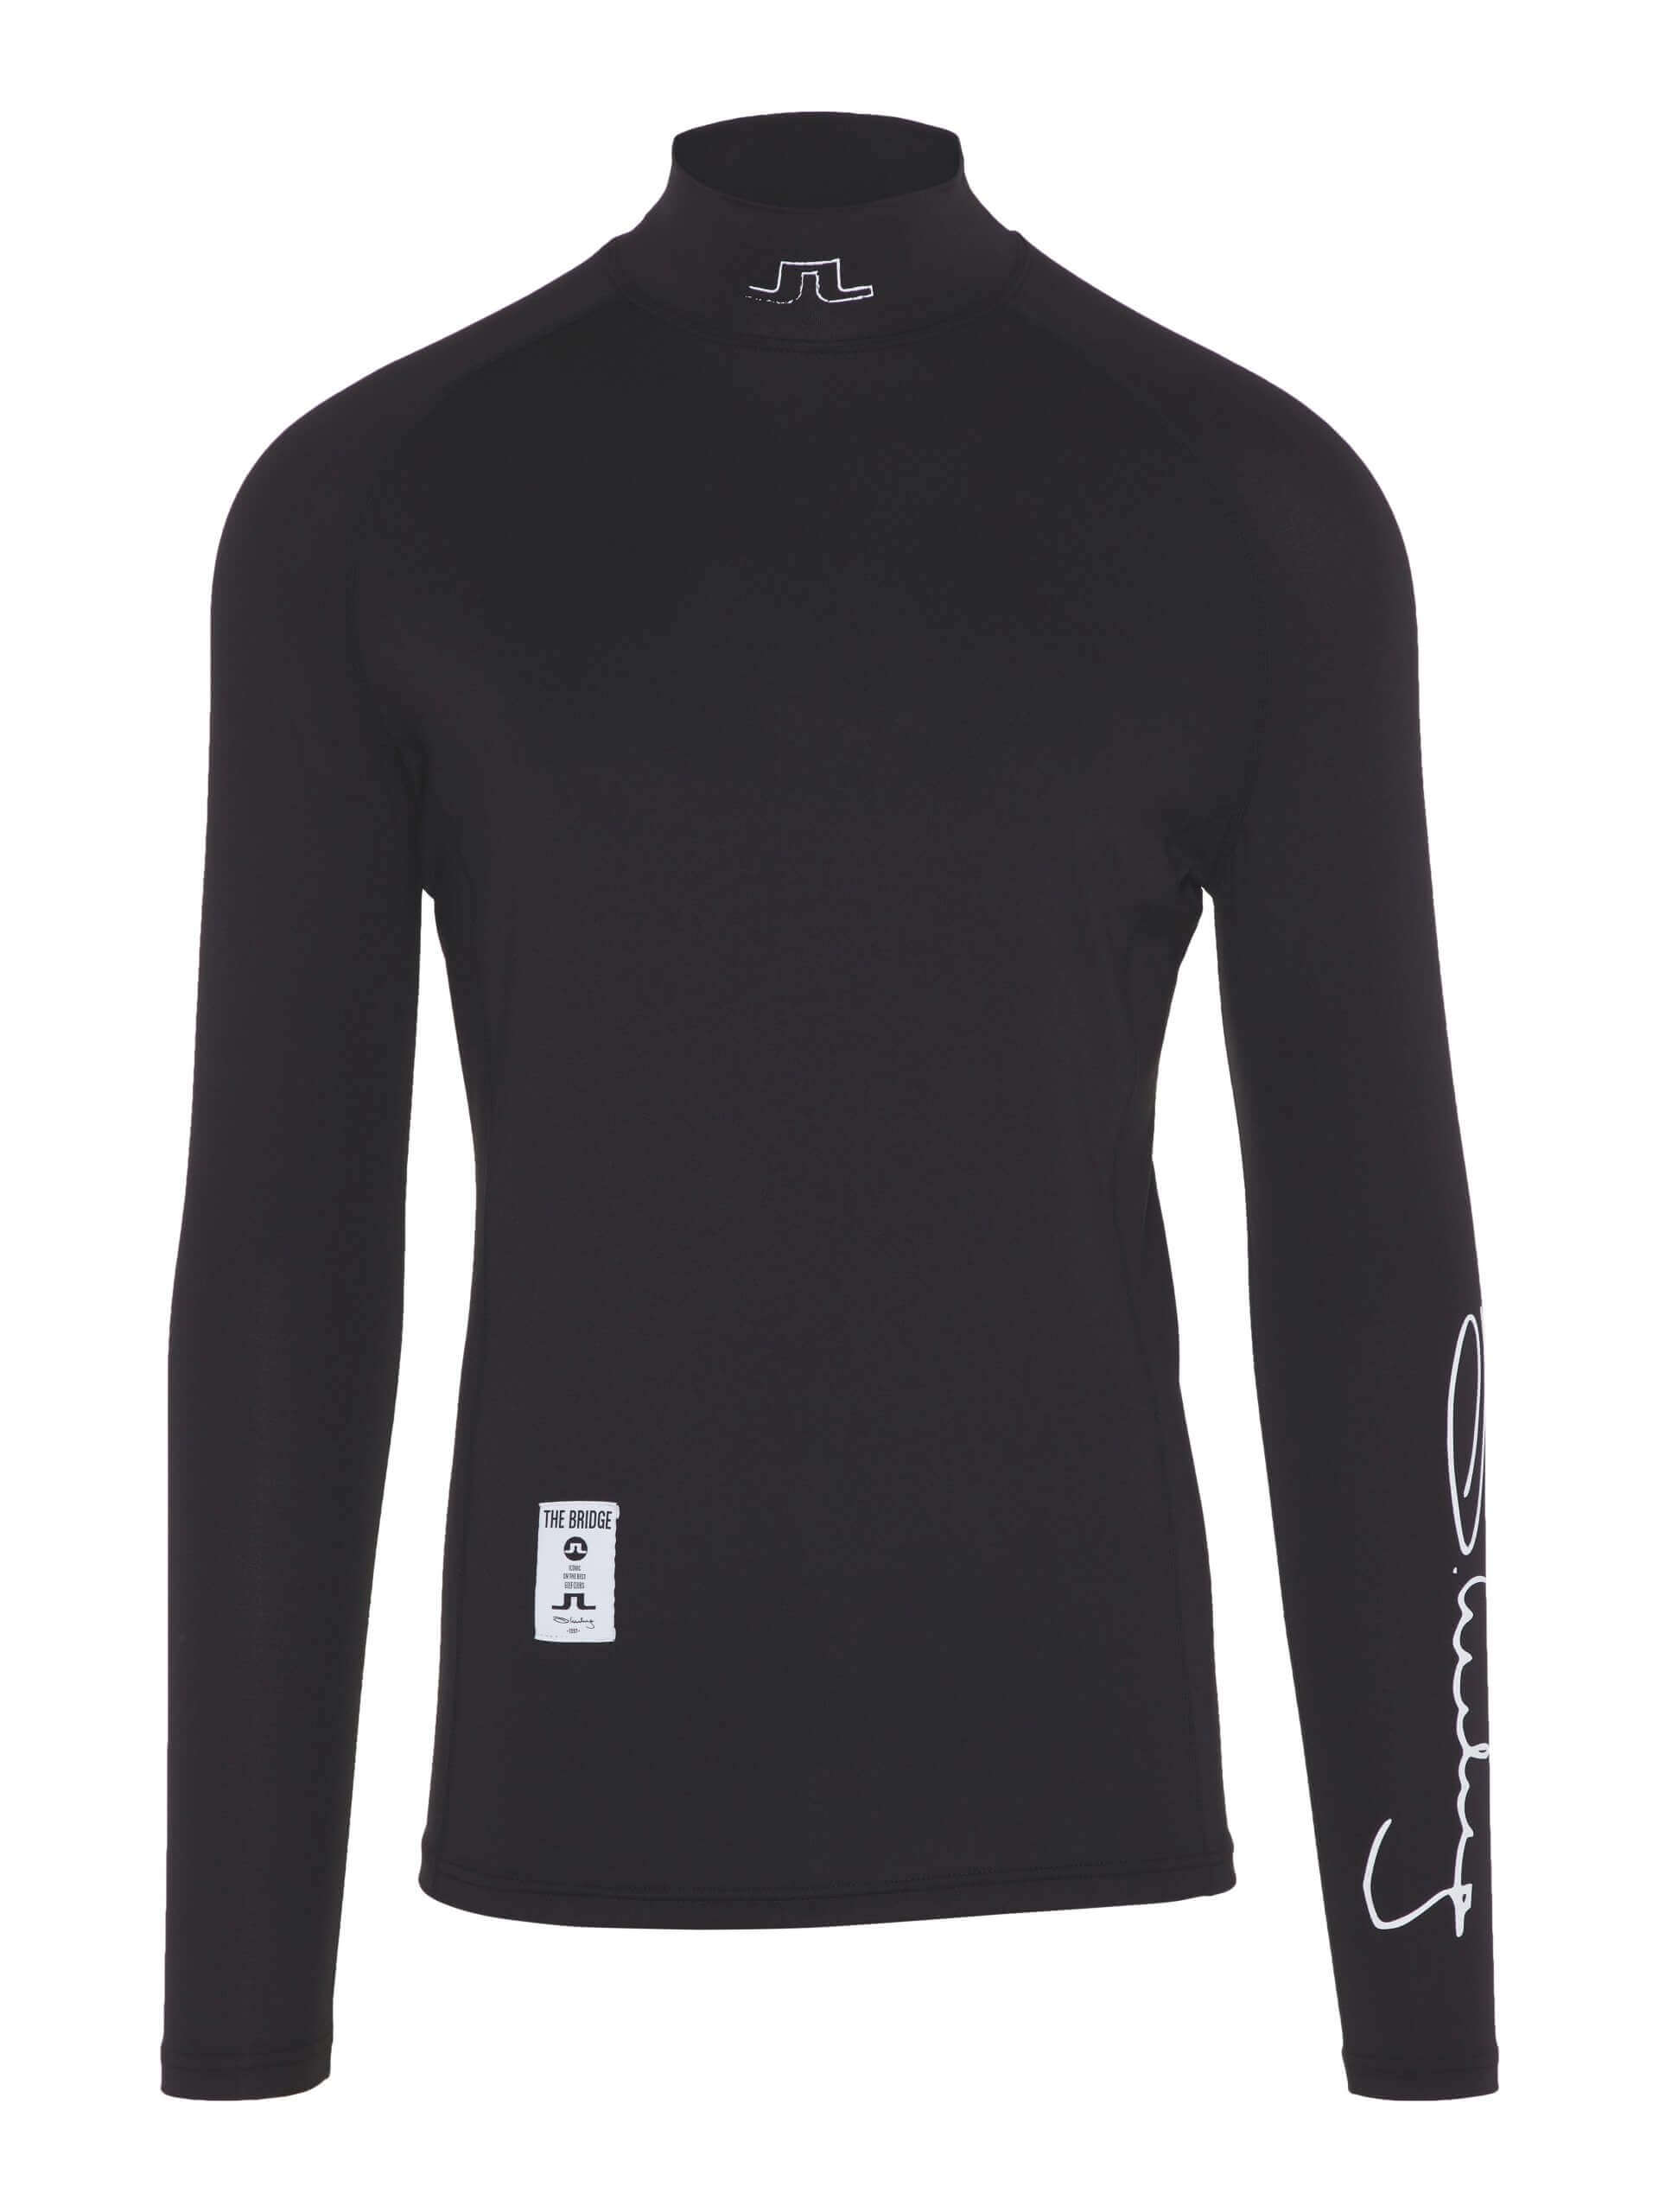 J.Lindeberg - El Soft Compression top in black